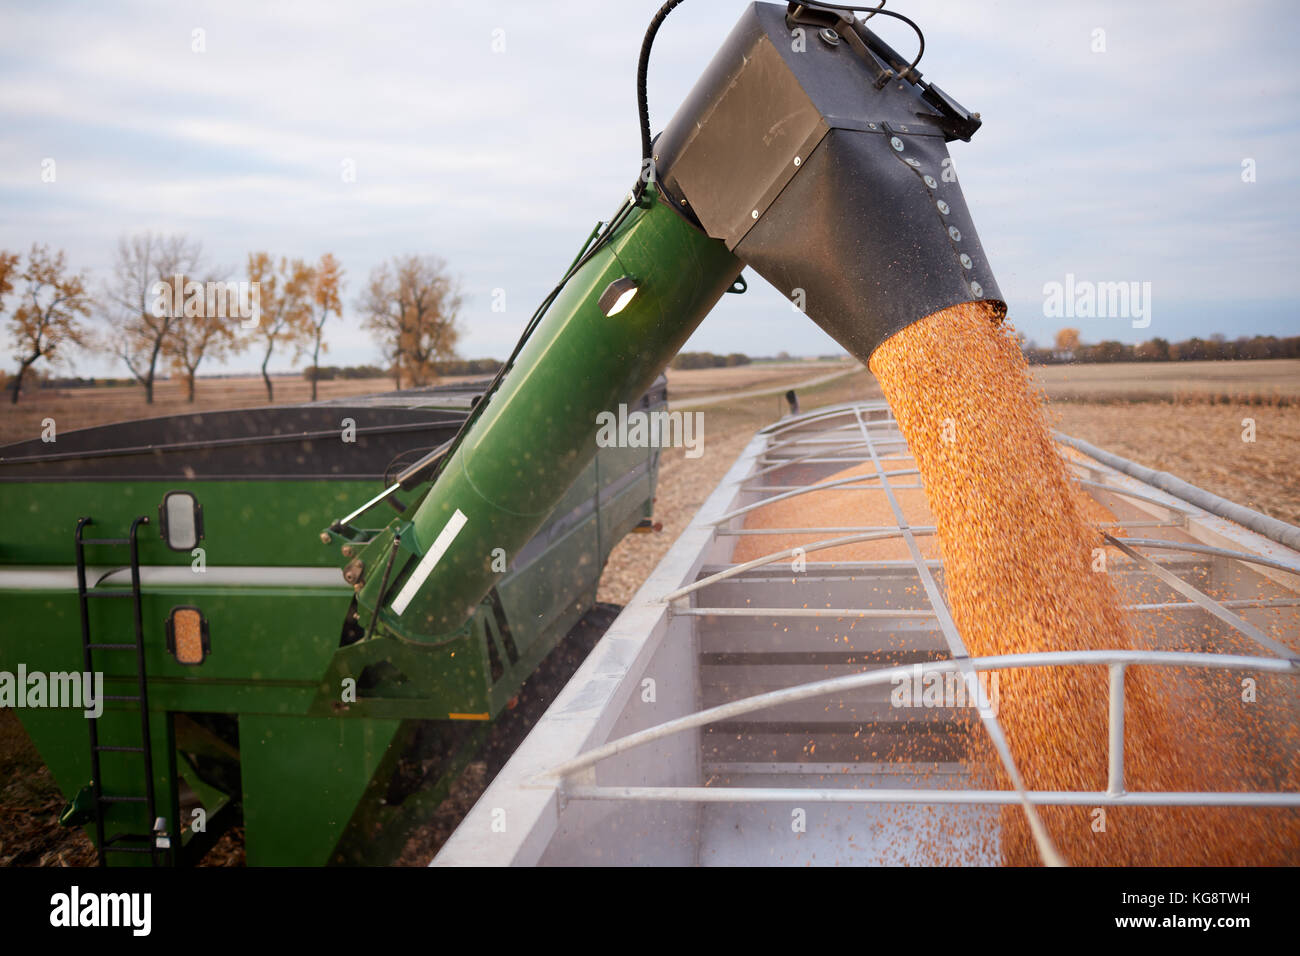 Tractor and trailer hopper filling a semi with newly harvested dried corn kernels using a funnel attachment - Stock Image